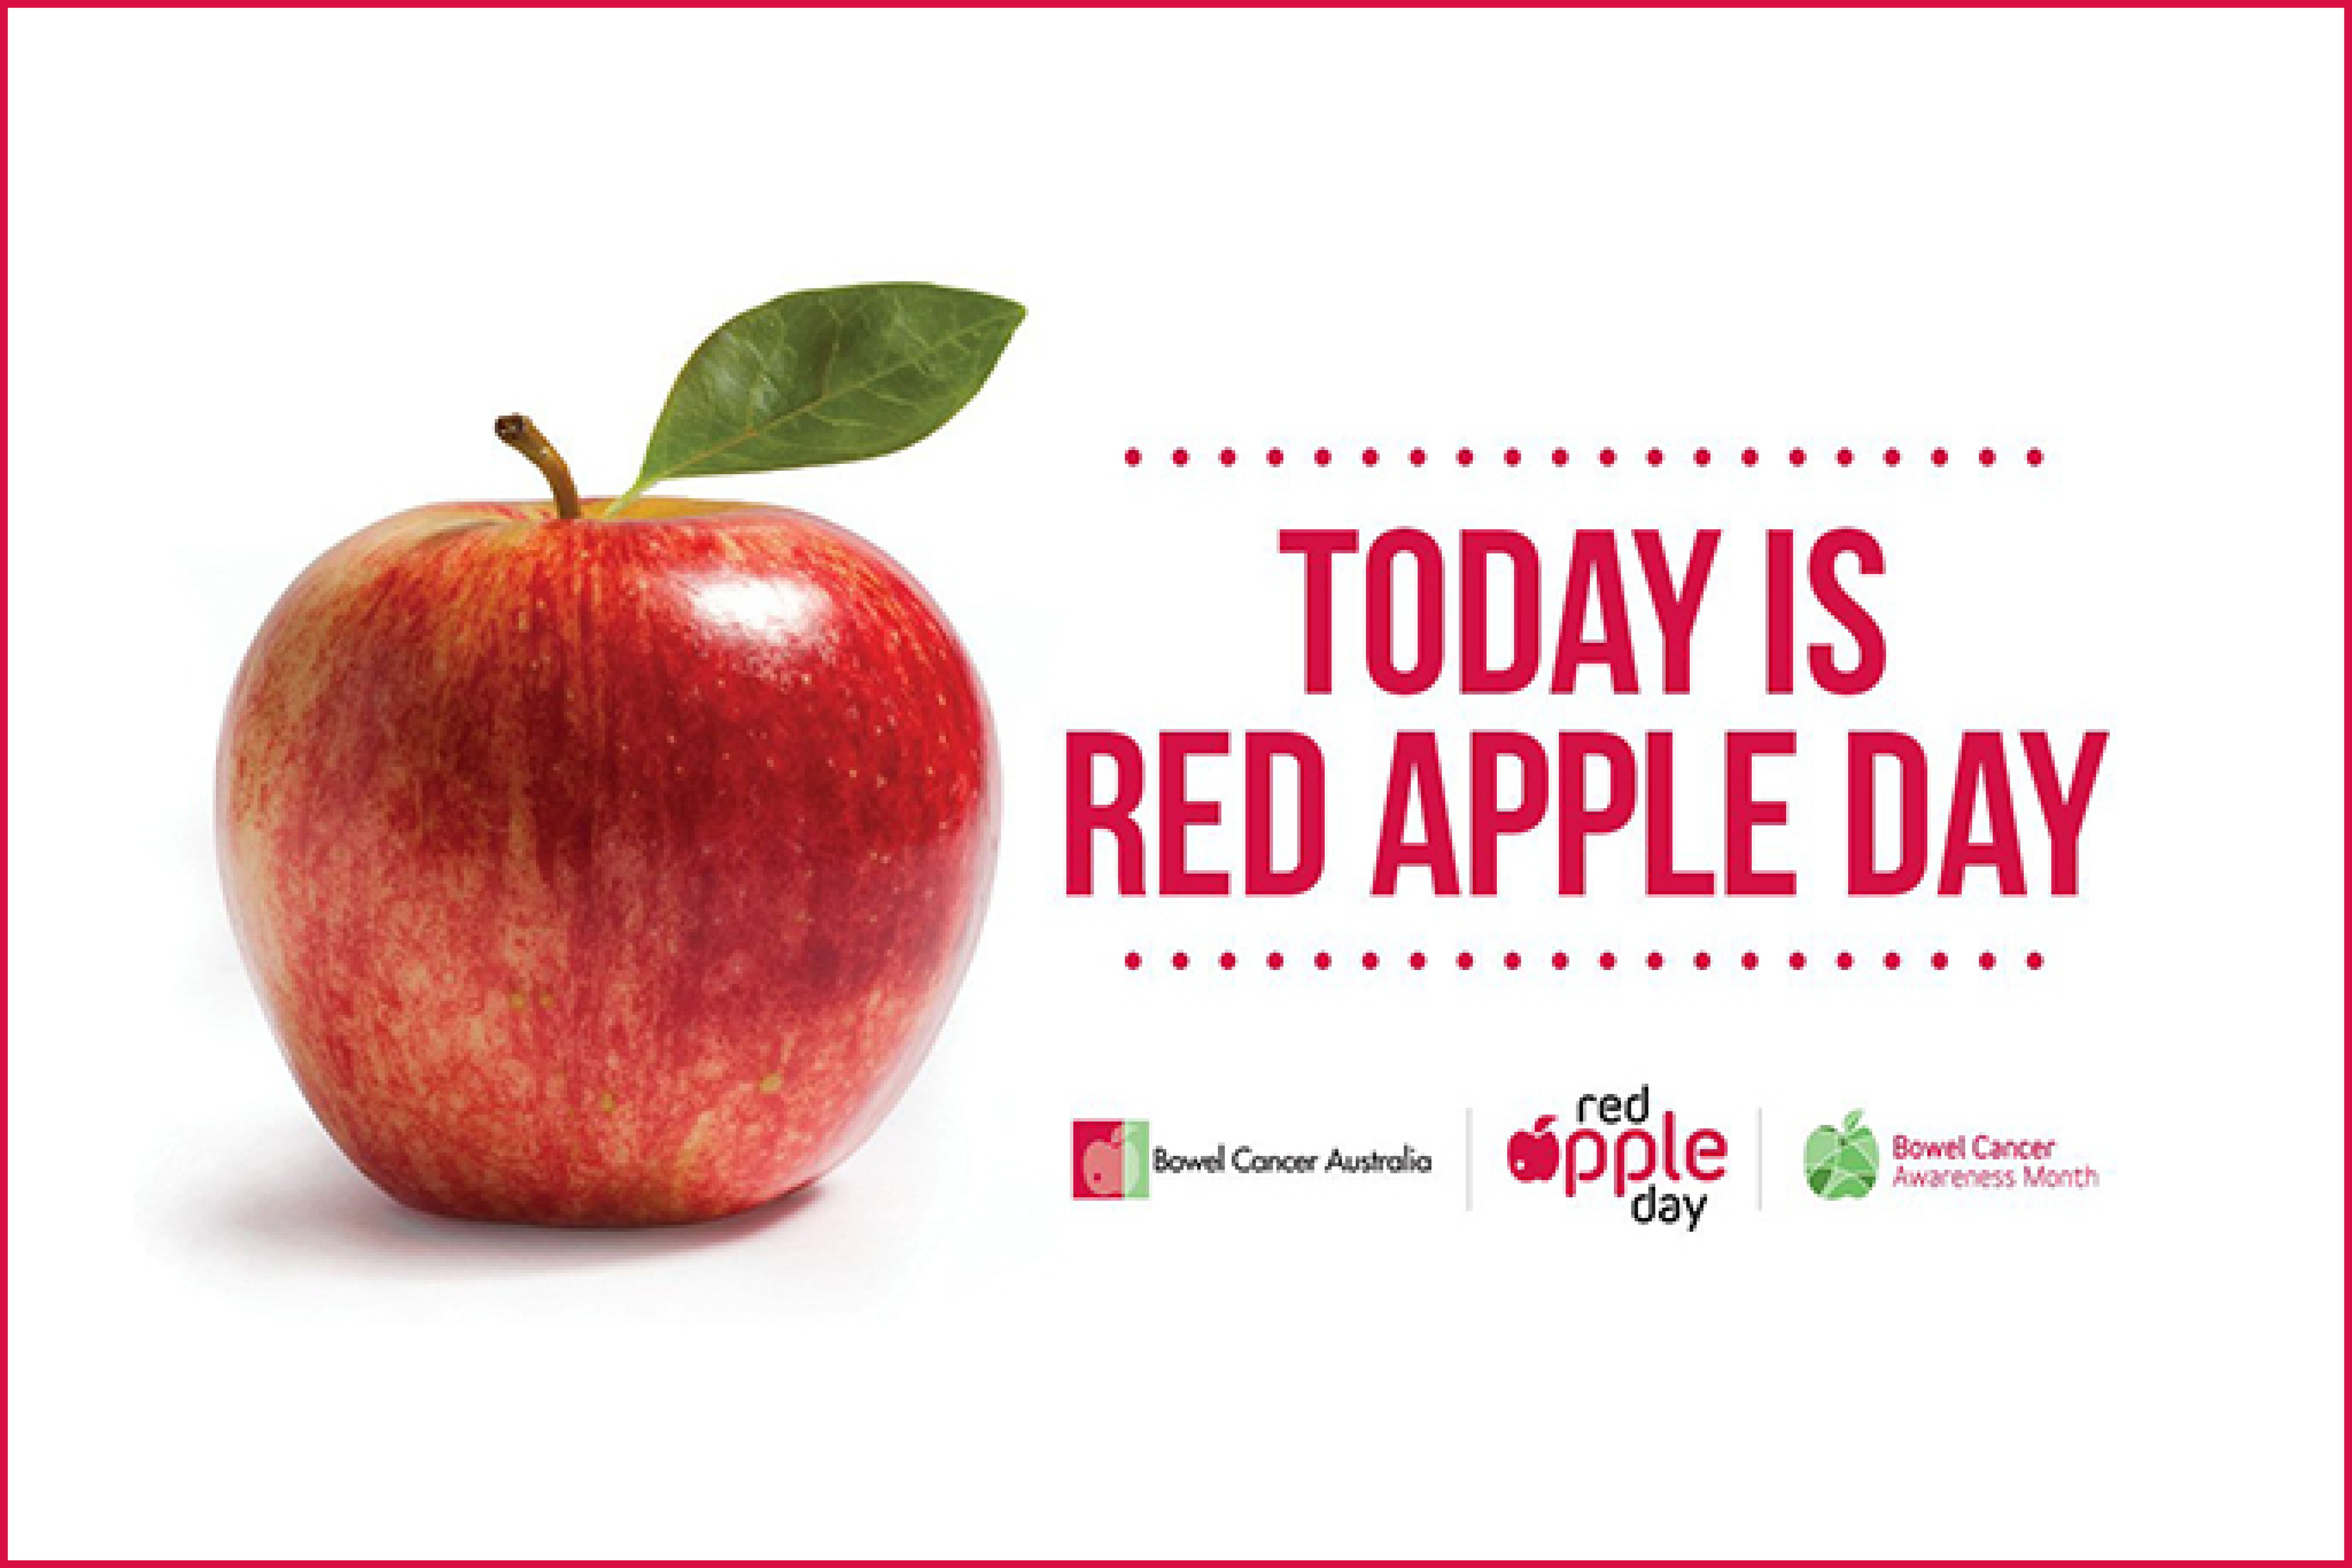 Red Apple Day